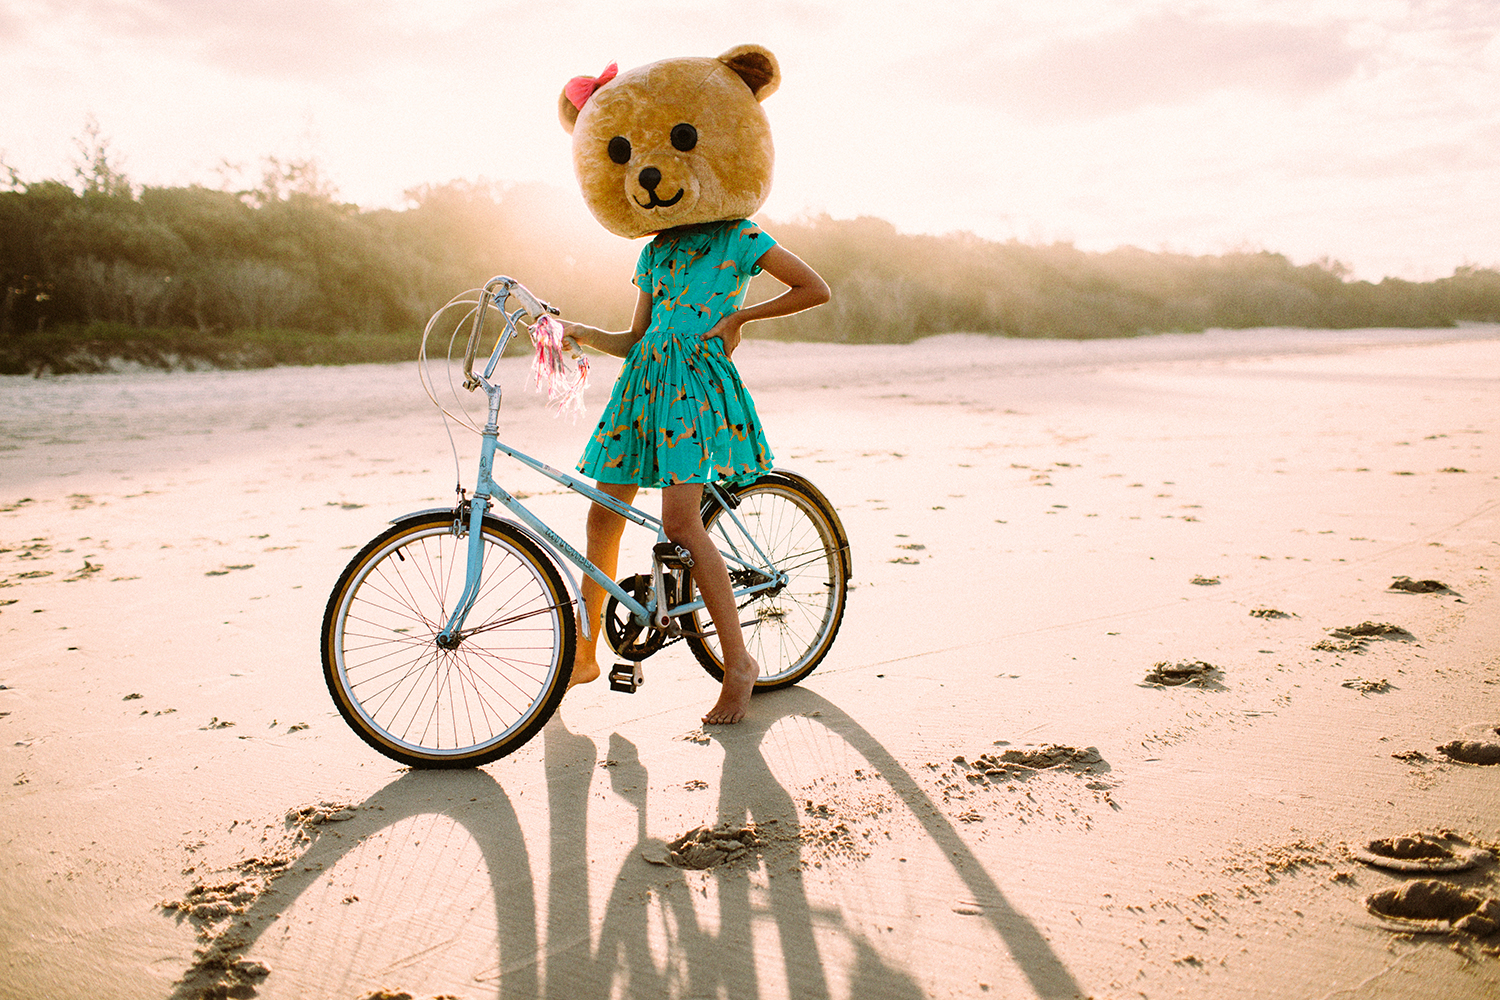 bike-and-bear096.jpg